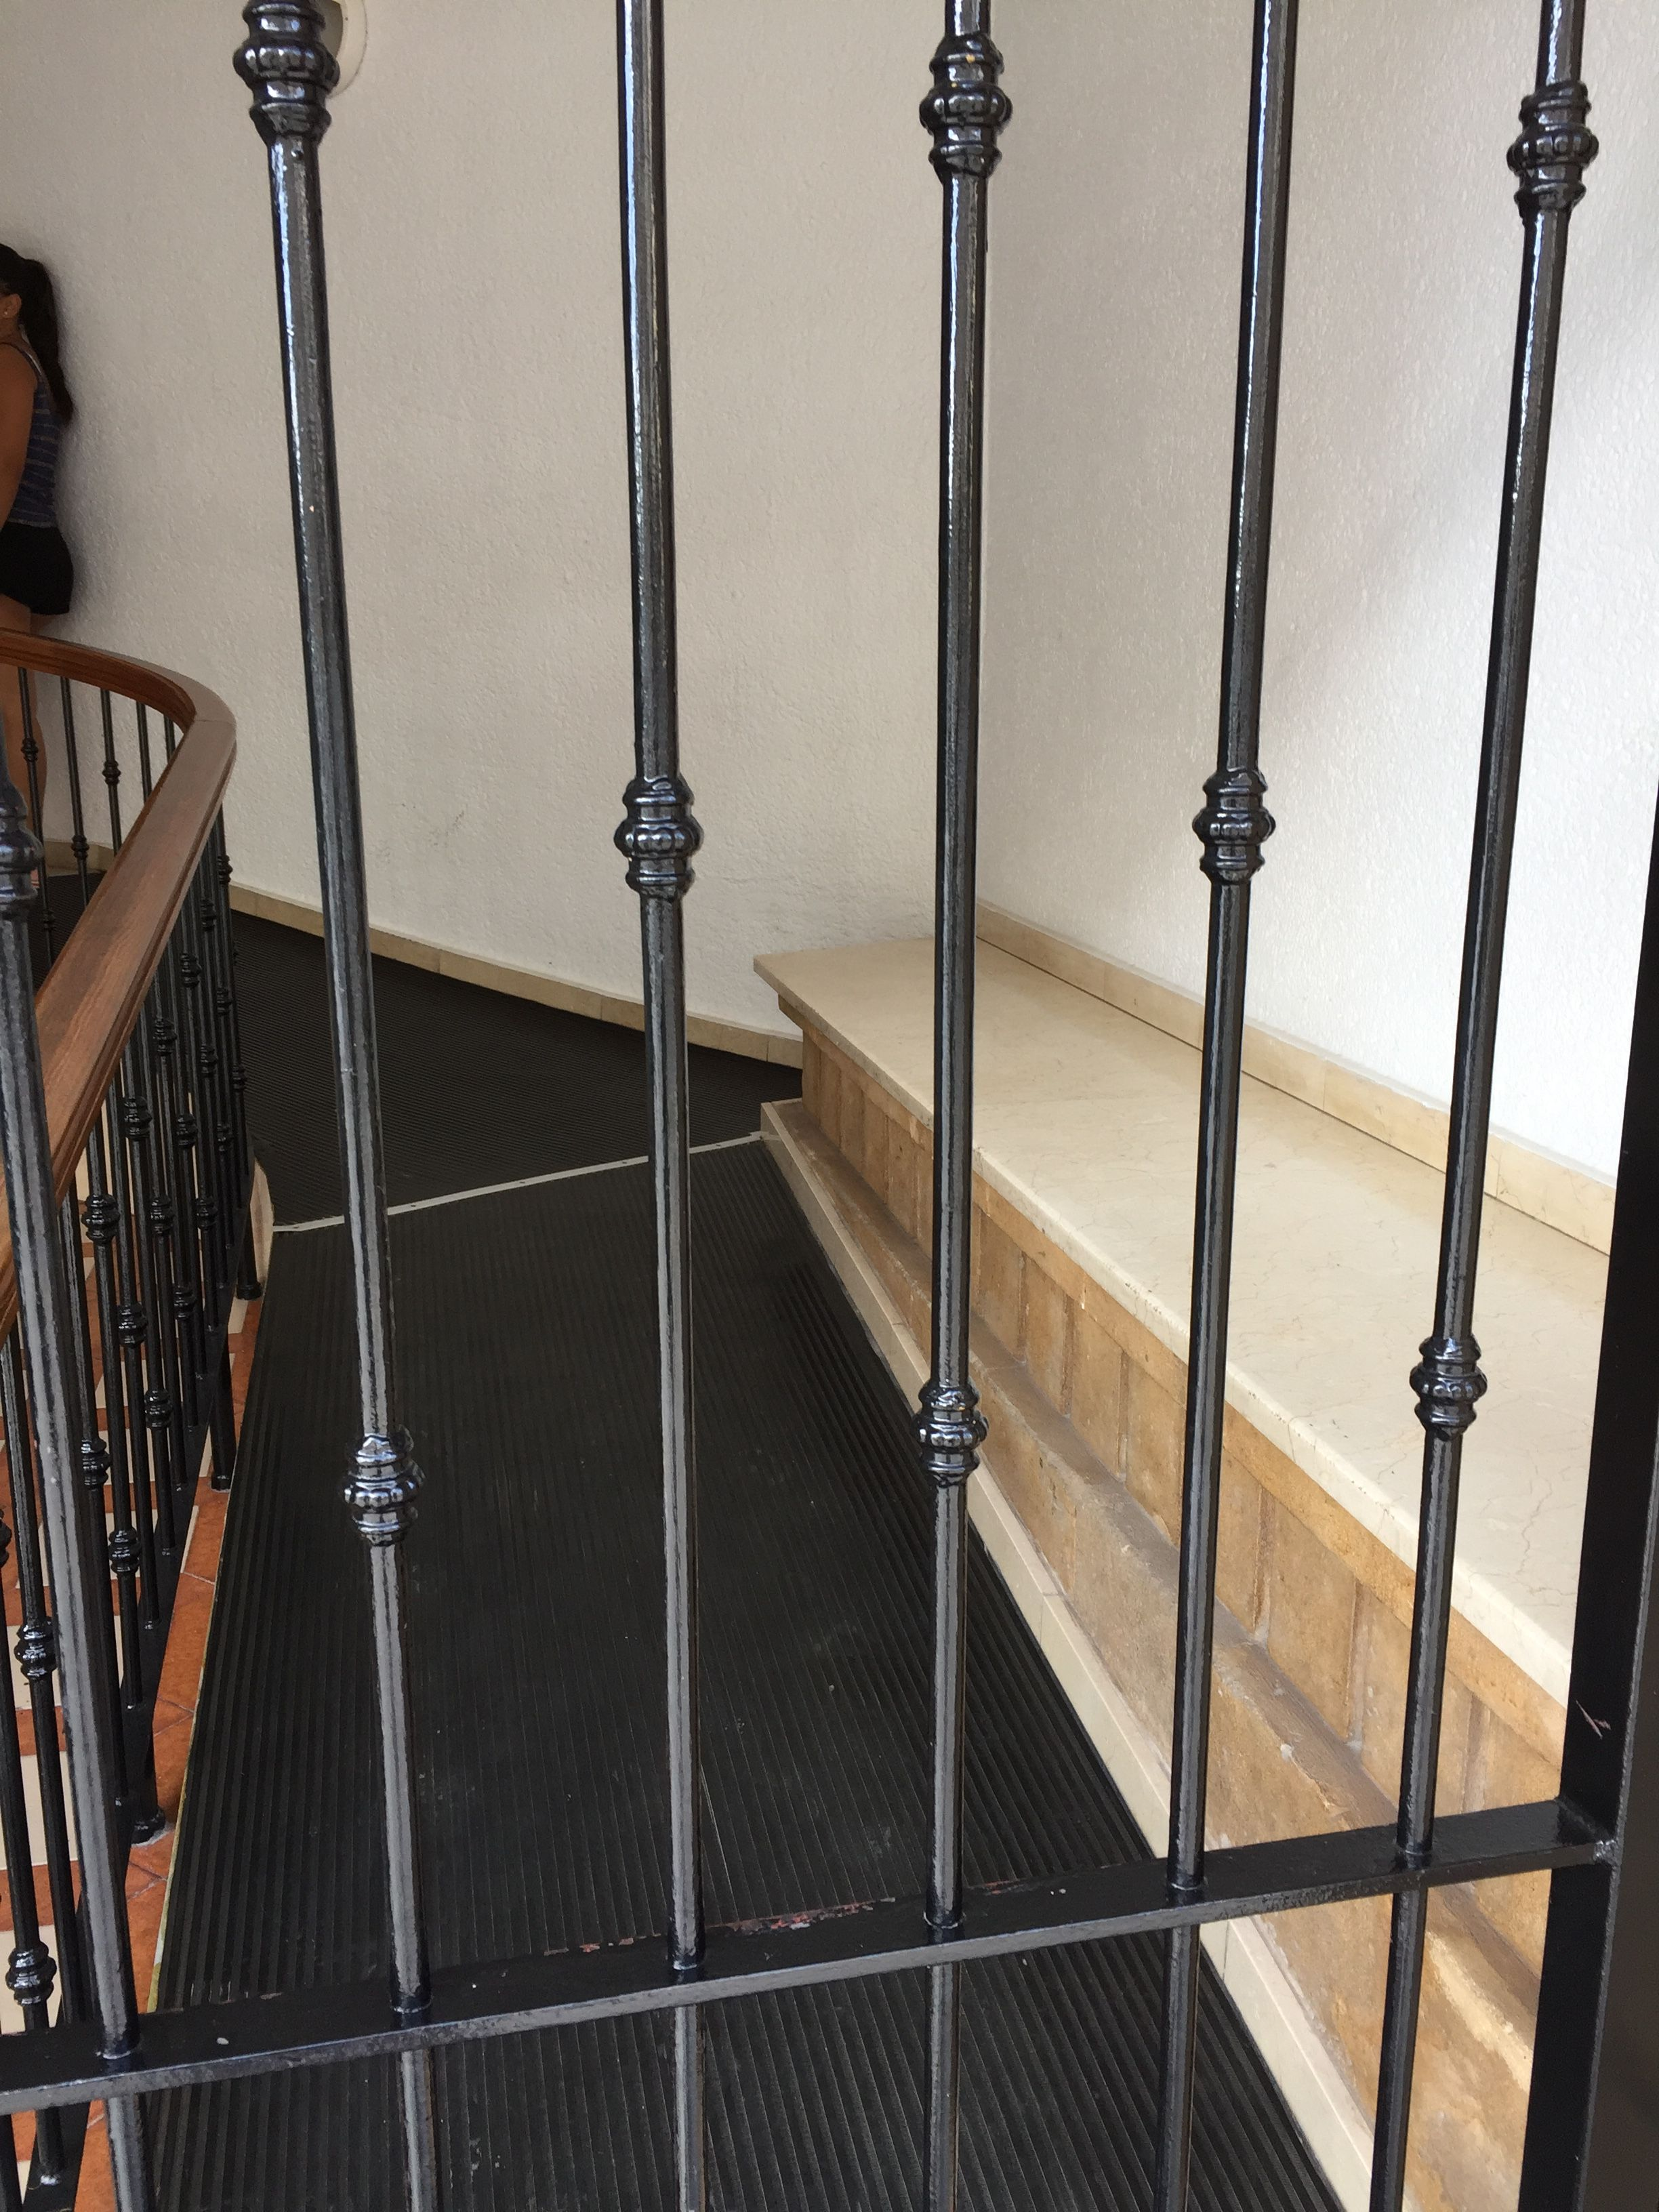 Pin By Rita Rake On Staircases - Staircases By Rita